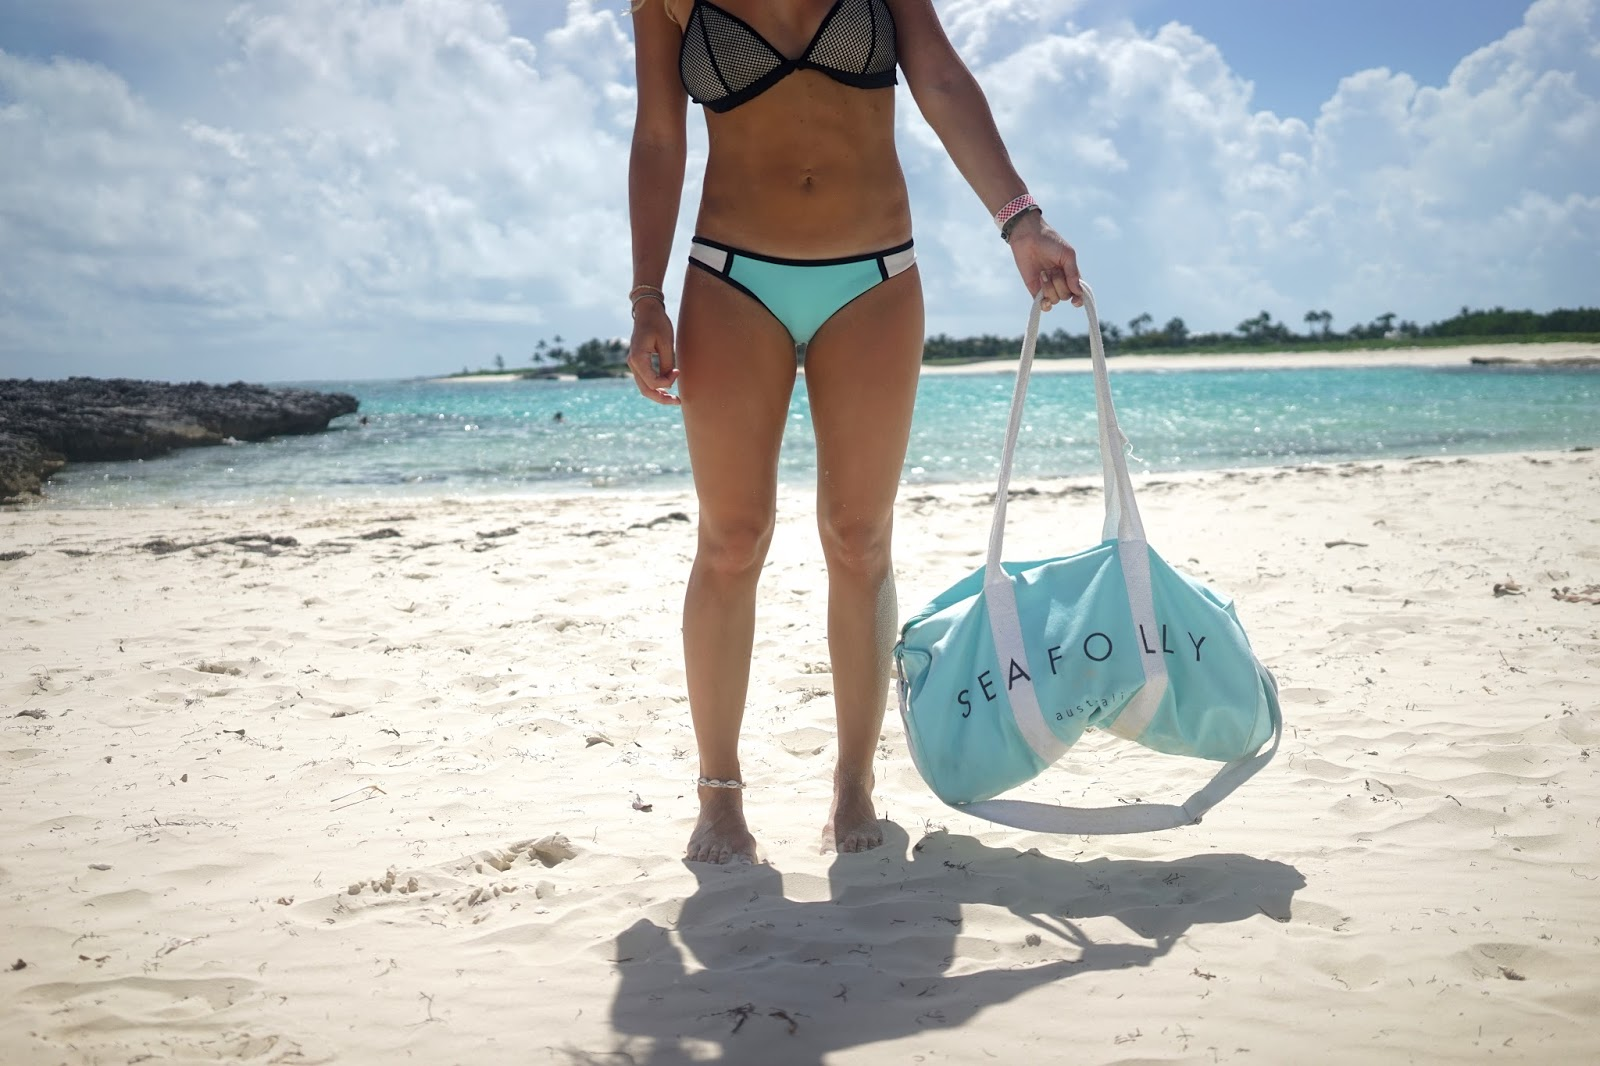 seafolly beach bag